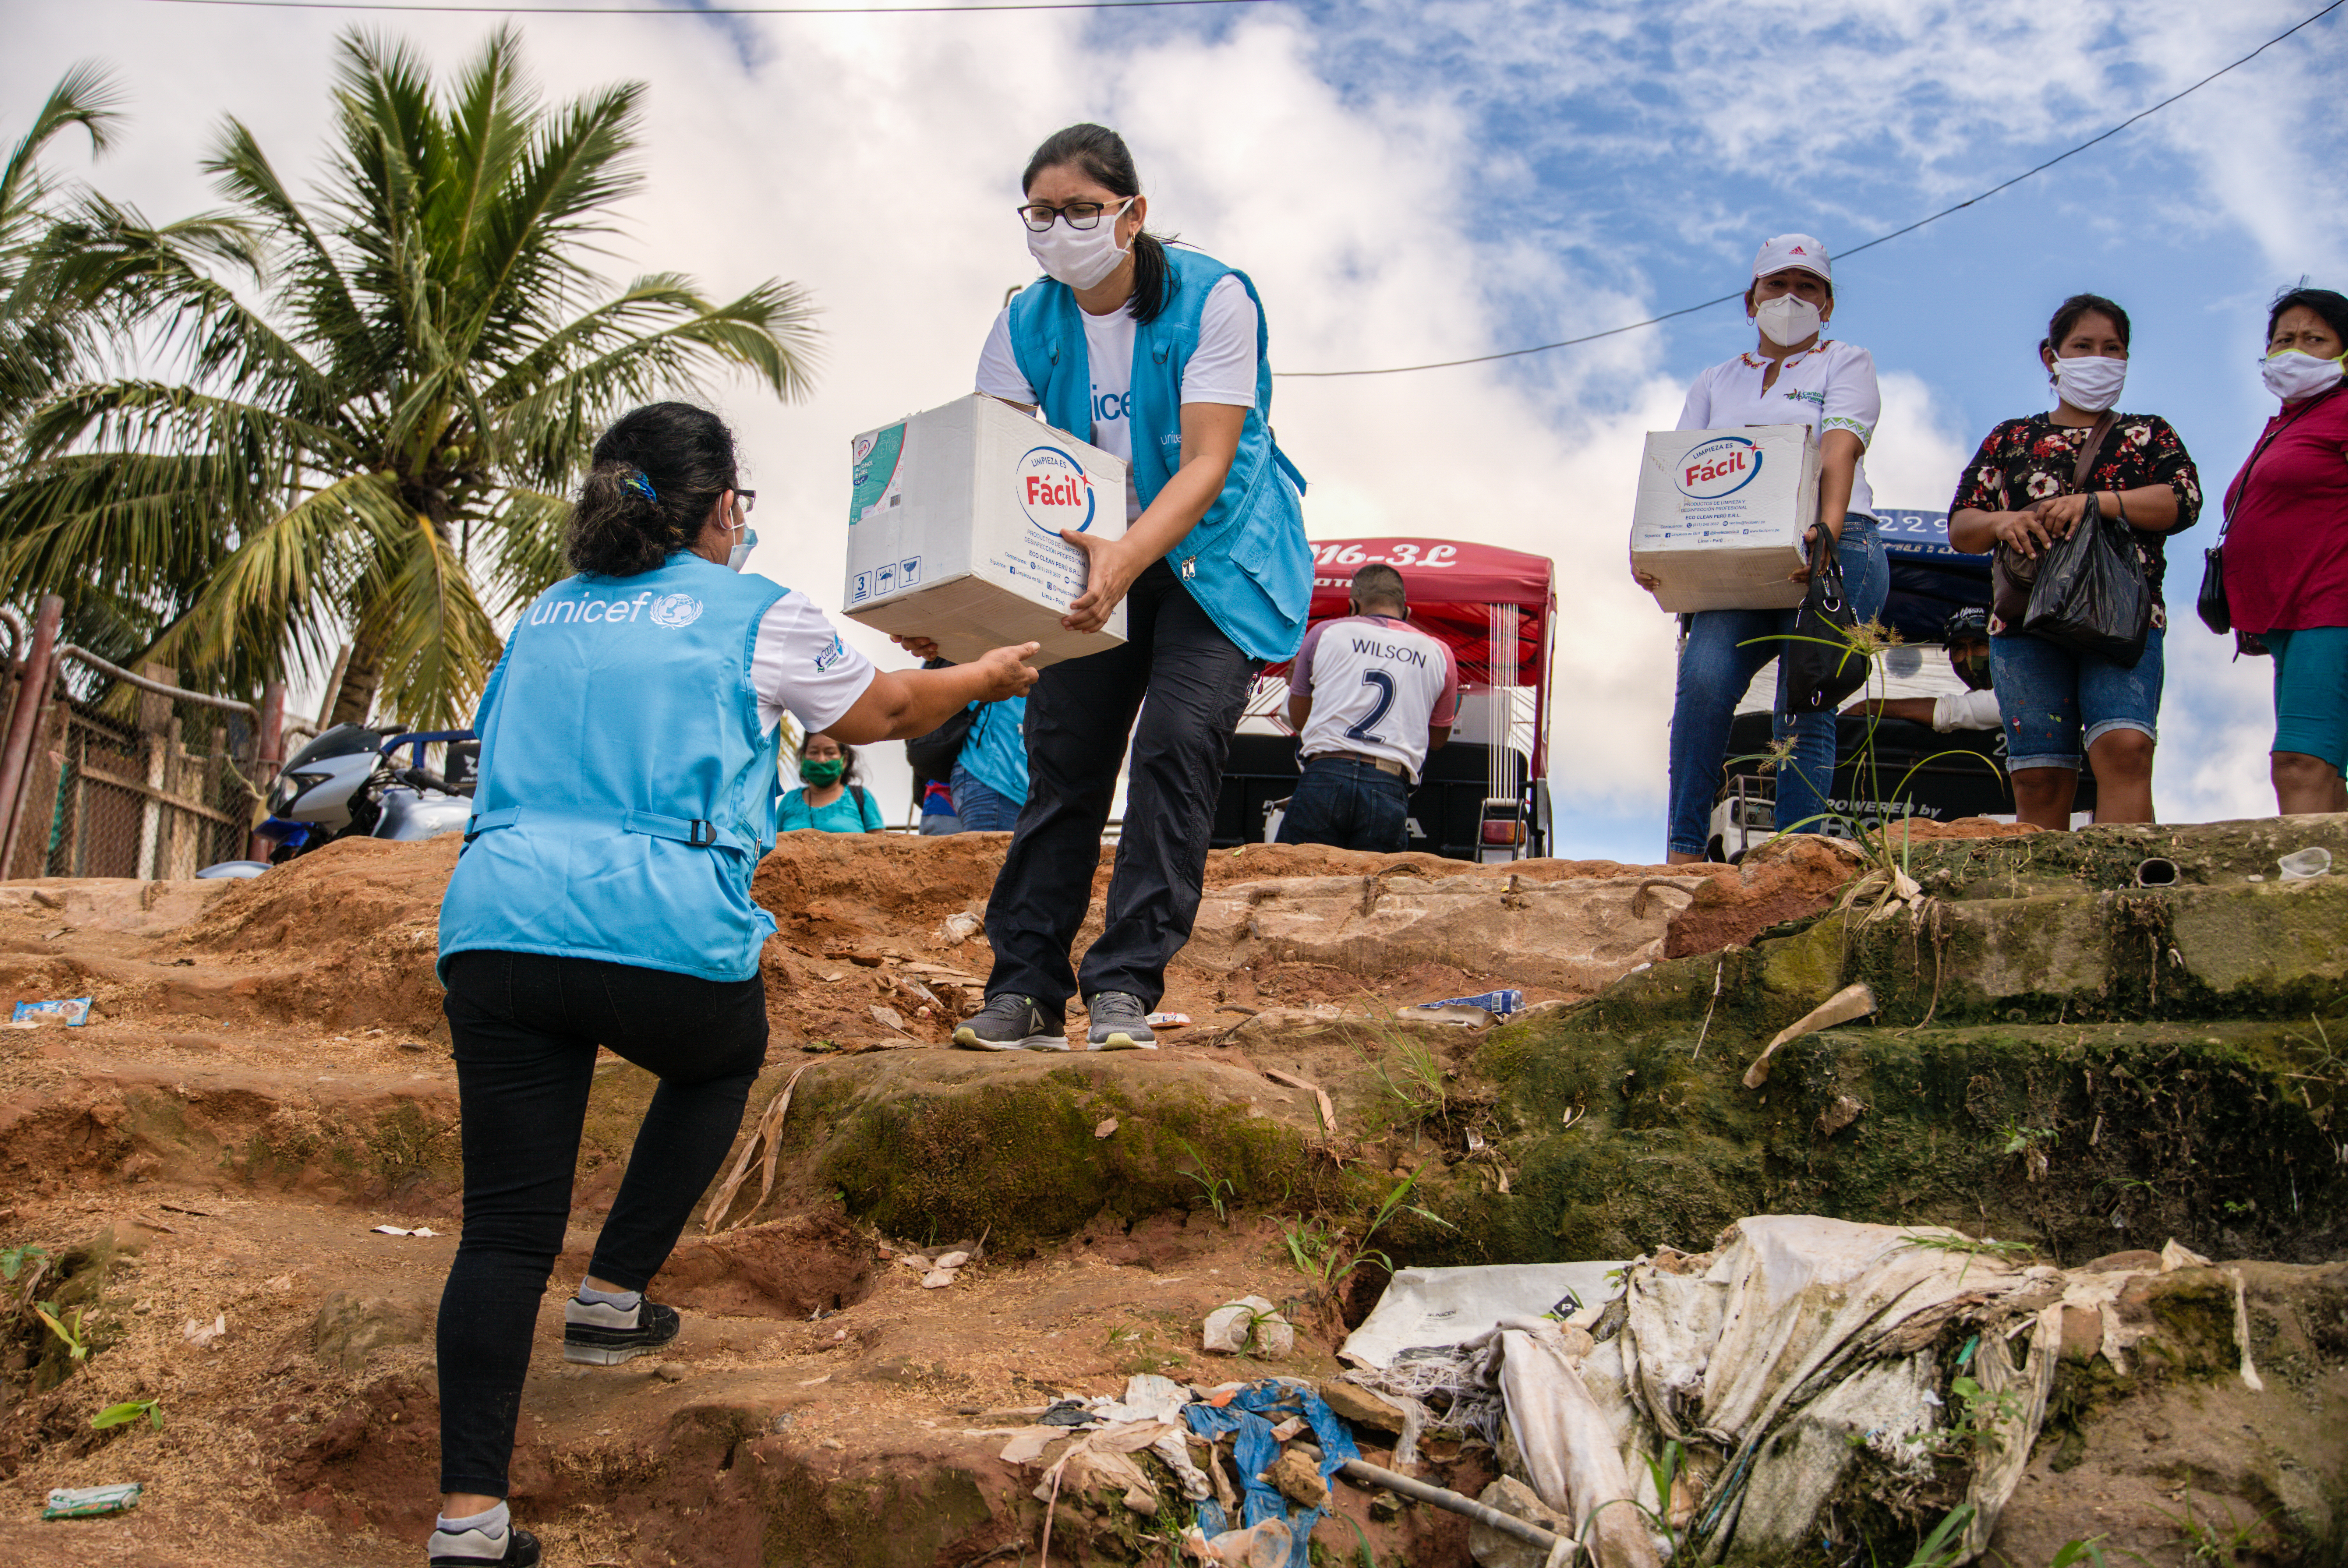 UN Staff carry boxes of supplies to communities in remote areas of Peru.